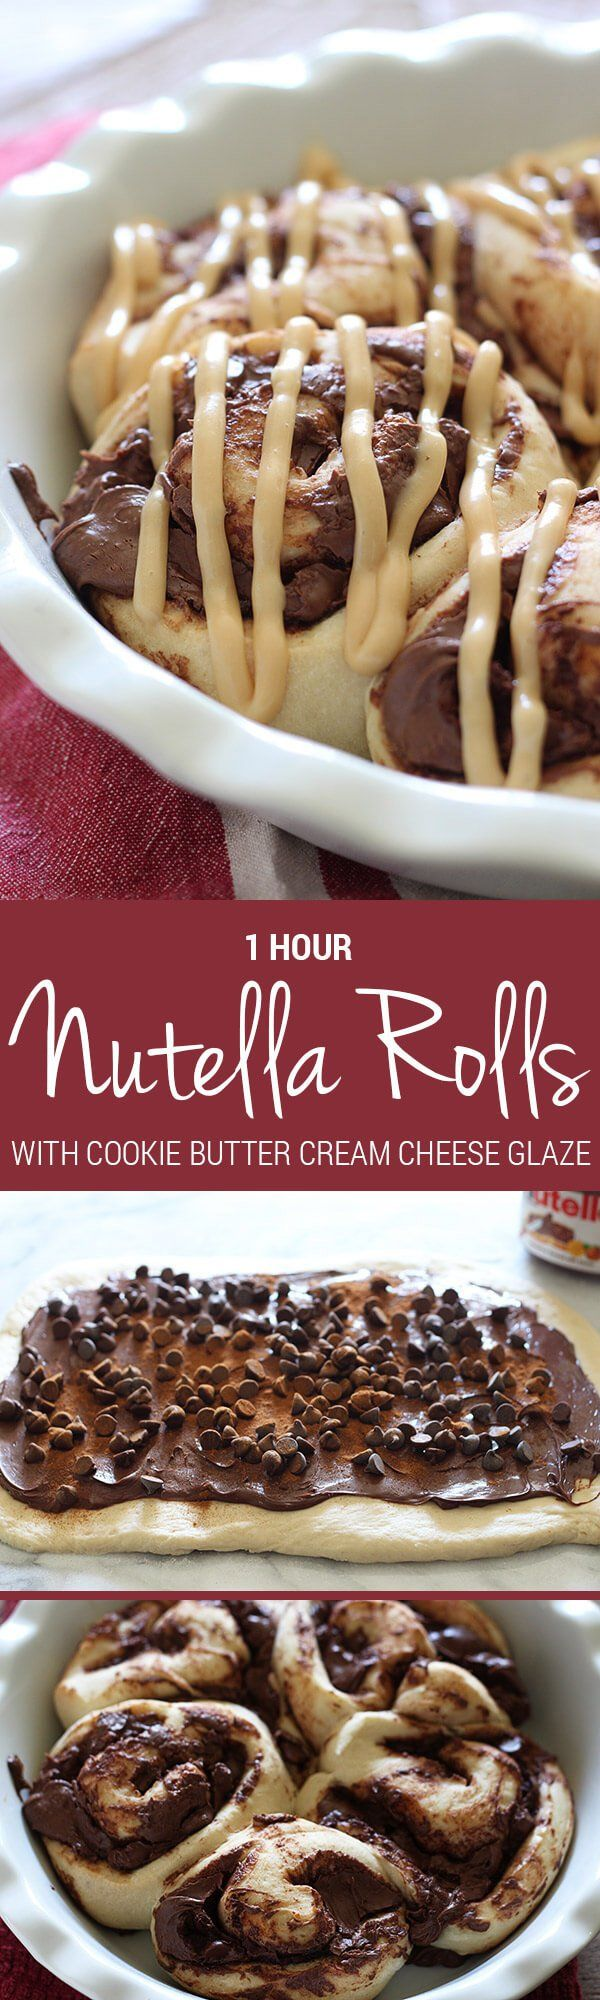 These take just ONE HOUR! Nutella Rolls with Cookie Butter Cream Cheese Glaze. Outrageously good!